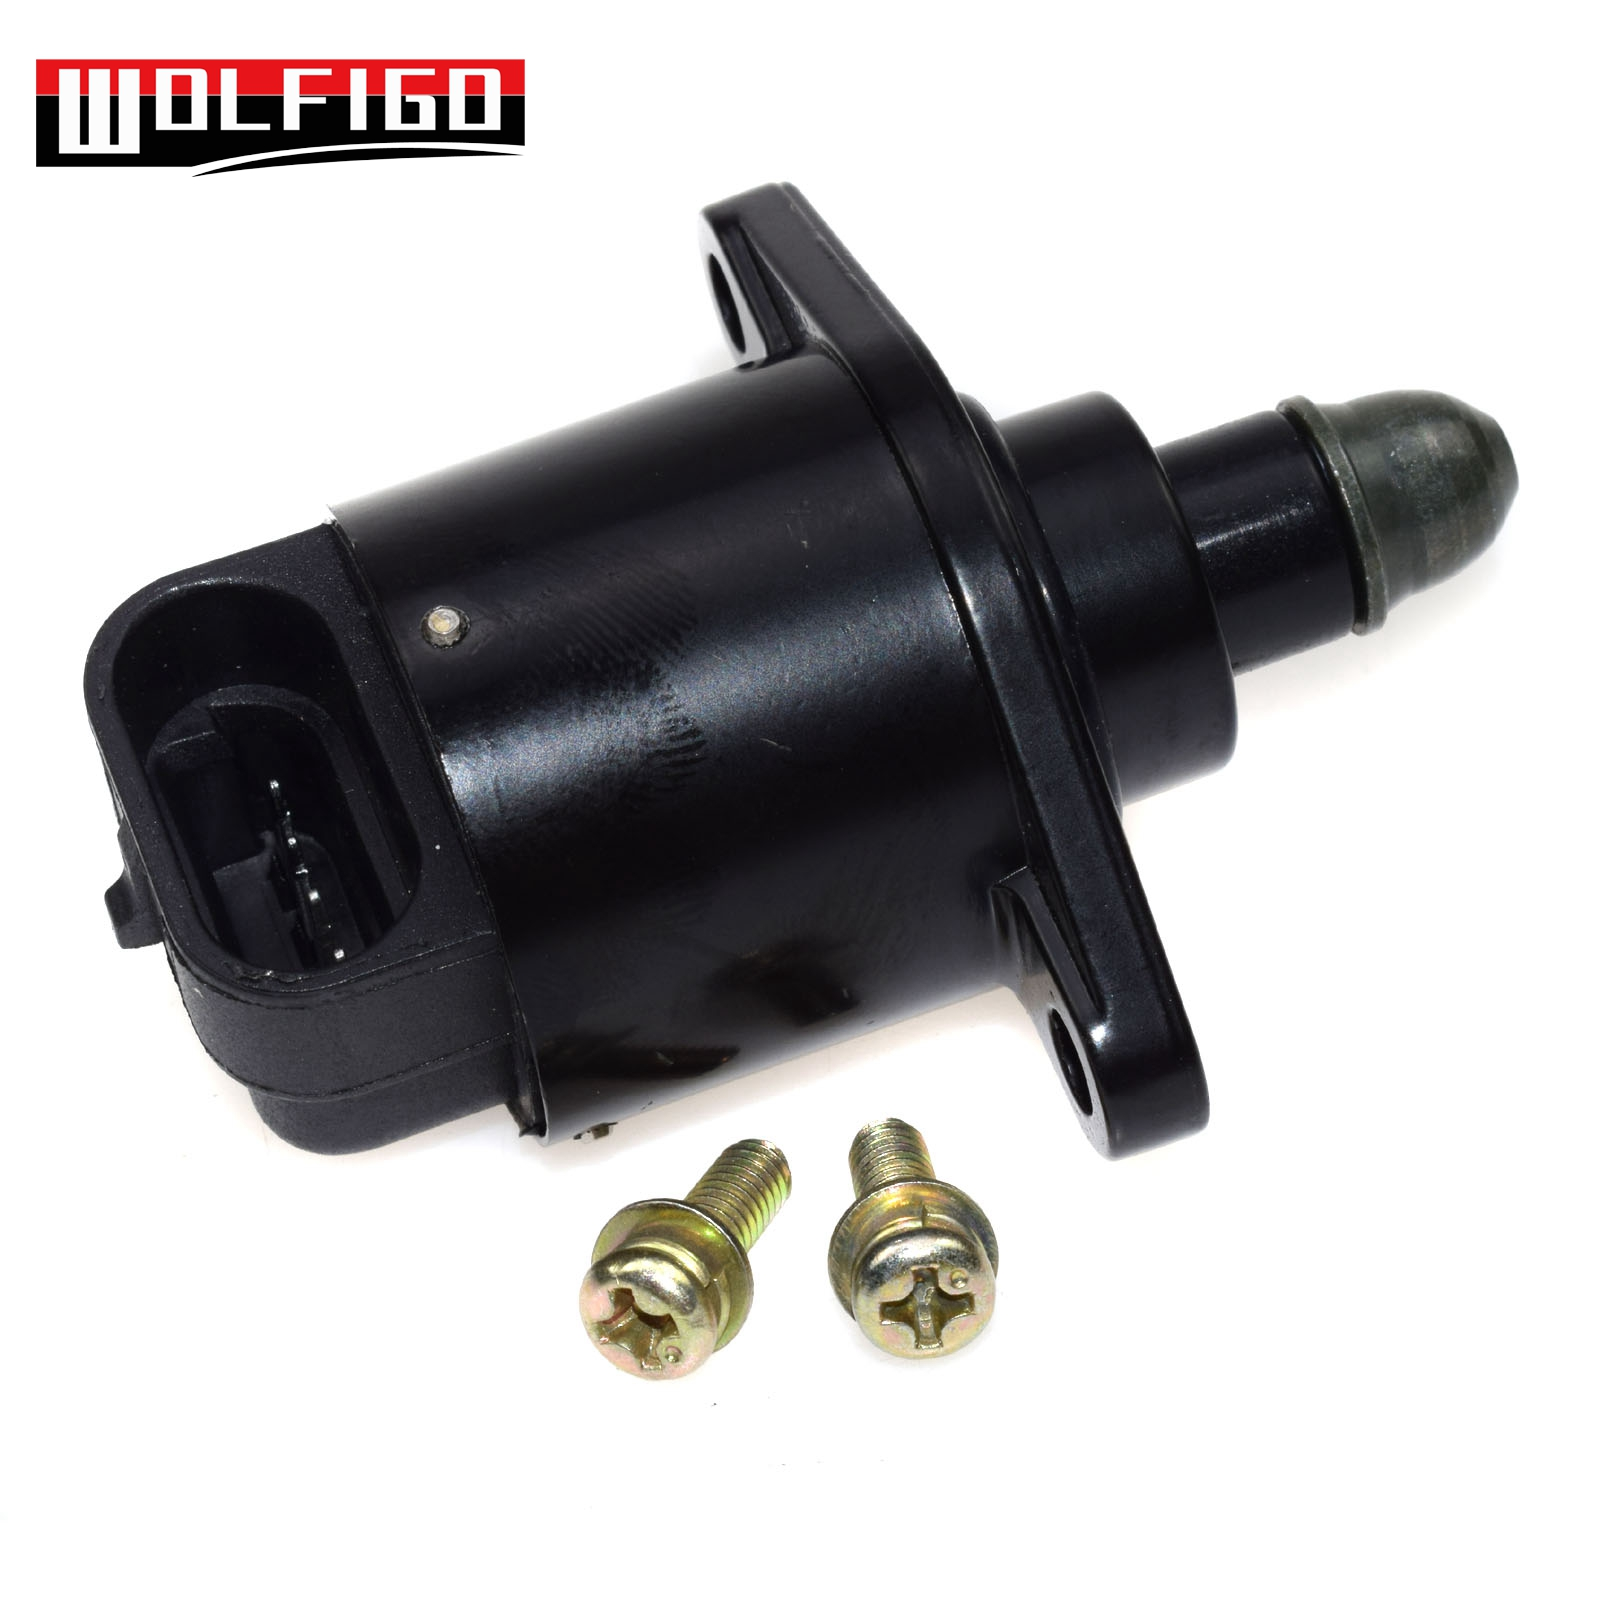 WOLFIGO 4Pins New Idle Air Control Valve For Chery QQ 2002-2008 DONGFENG EQ6380 D5184,S11-1135011